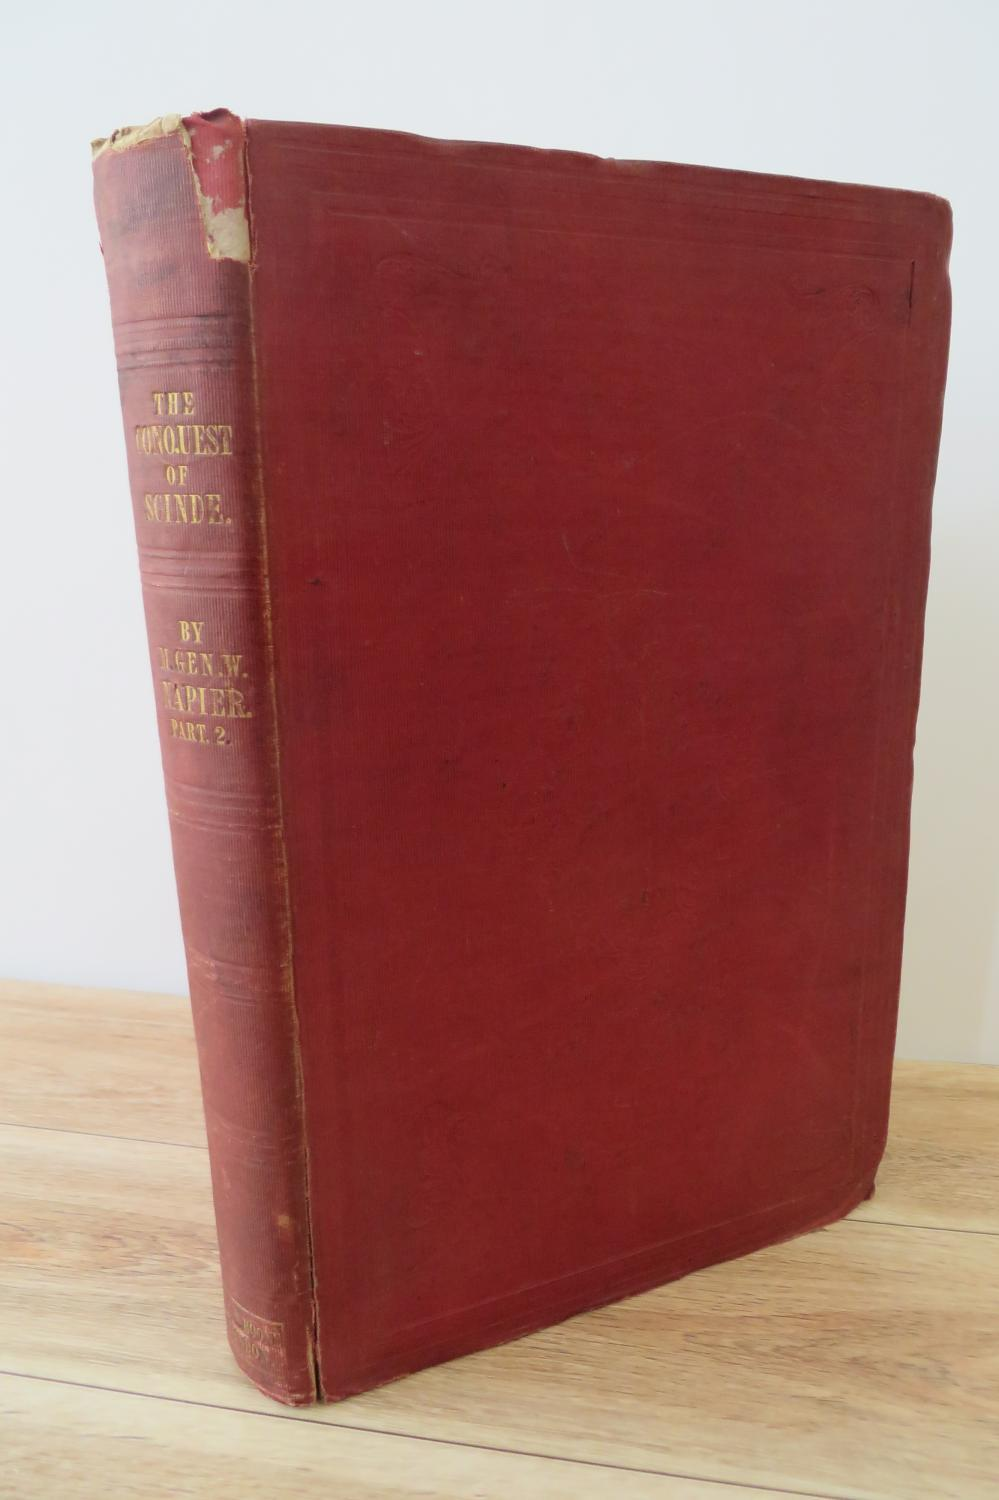 The Conquest of Scinde, with Some Introductory Passages in the Life of Major-General Sir Charles James Napier. (Volume 2)